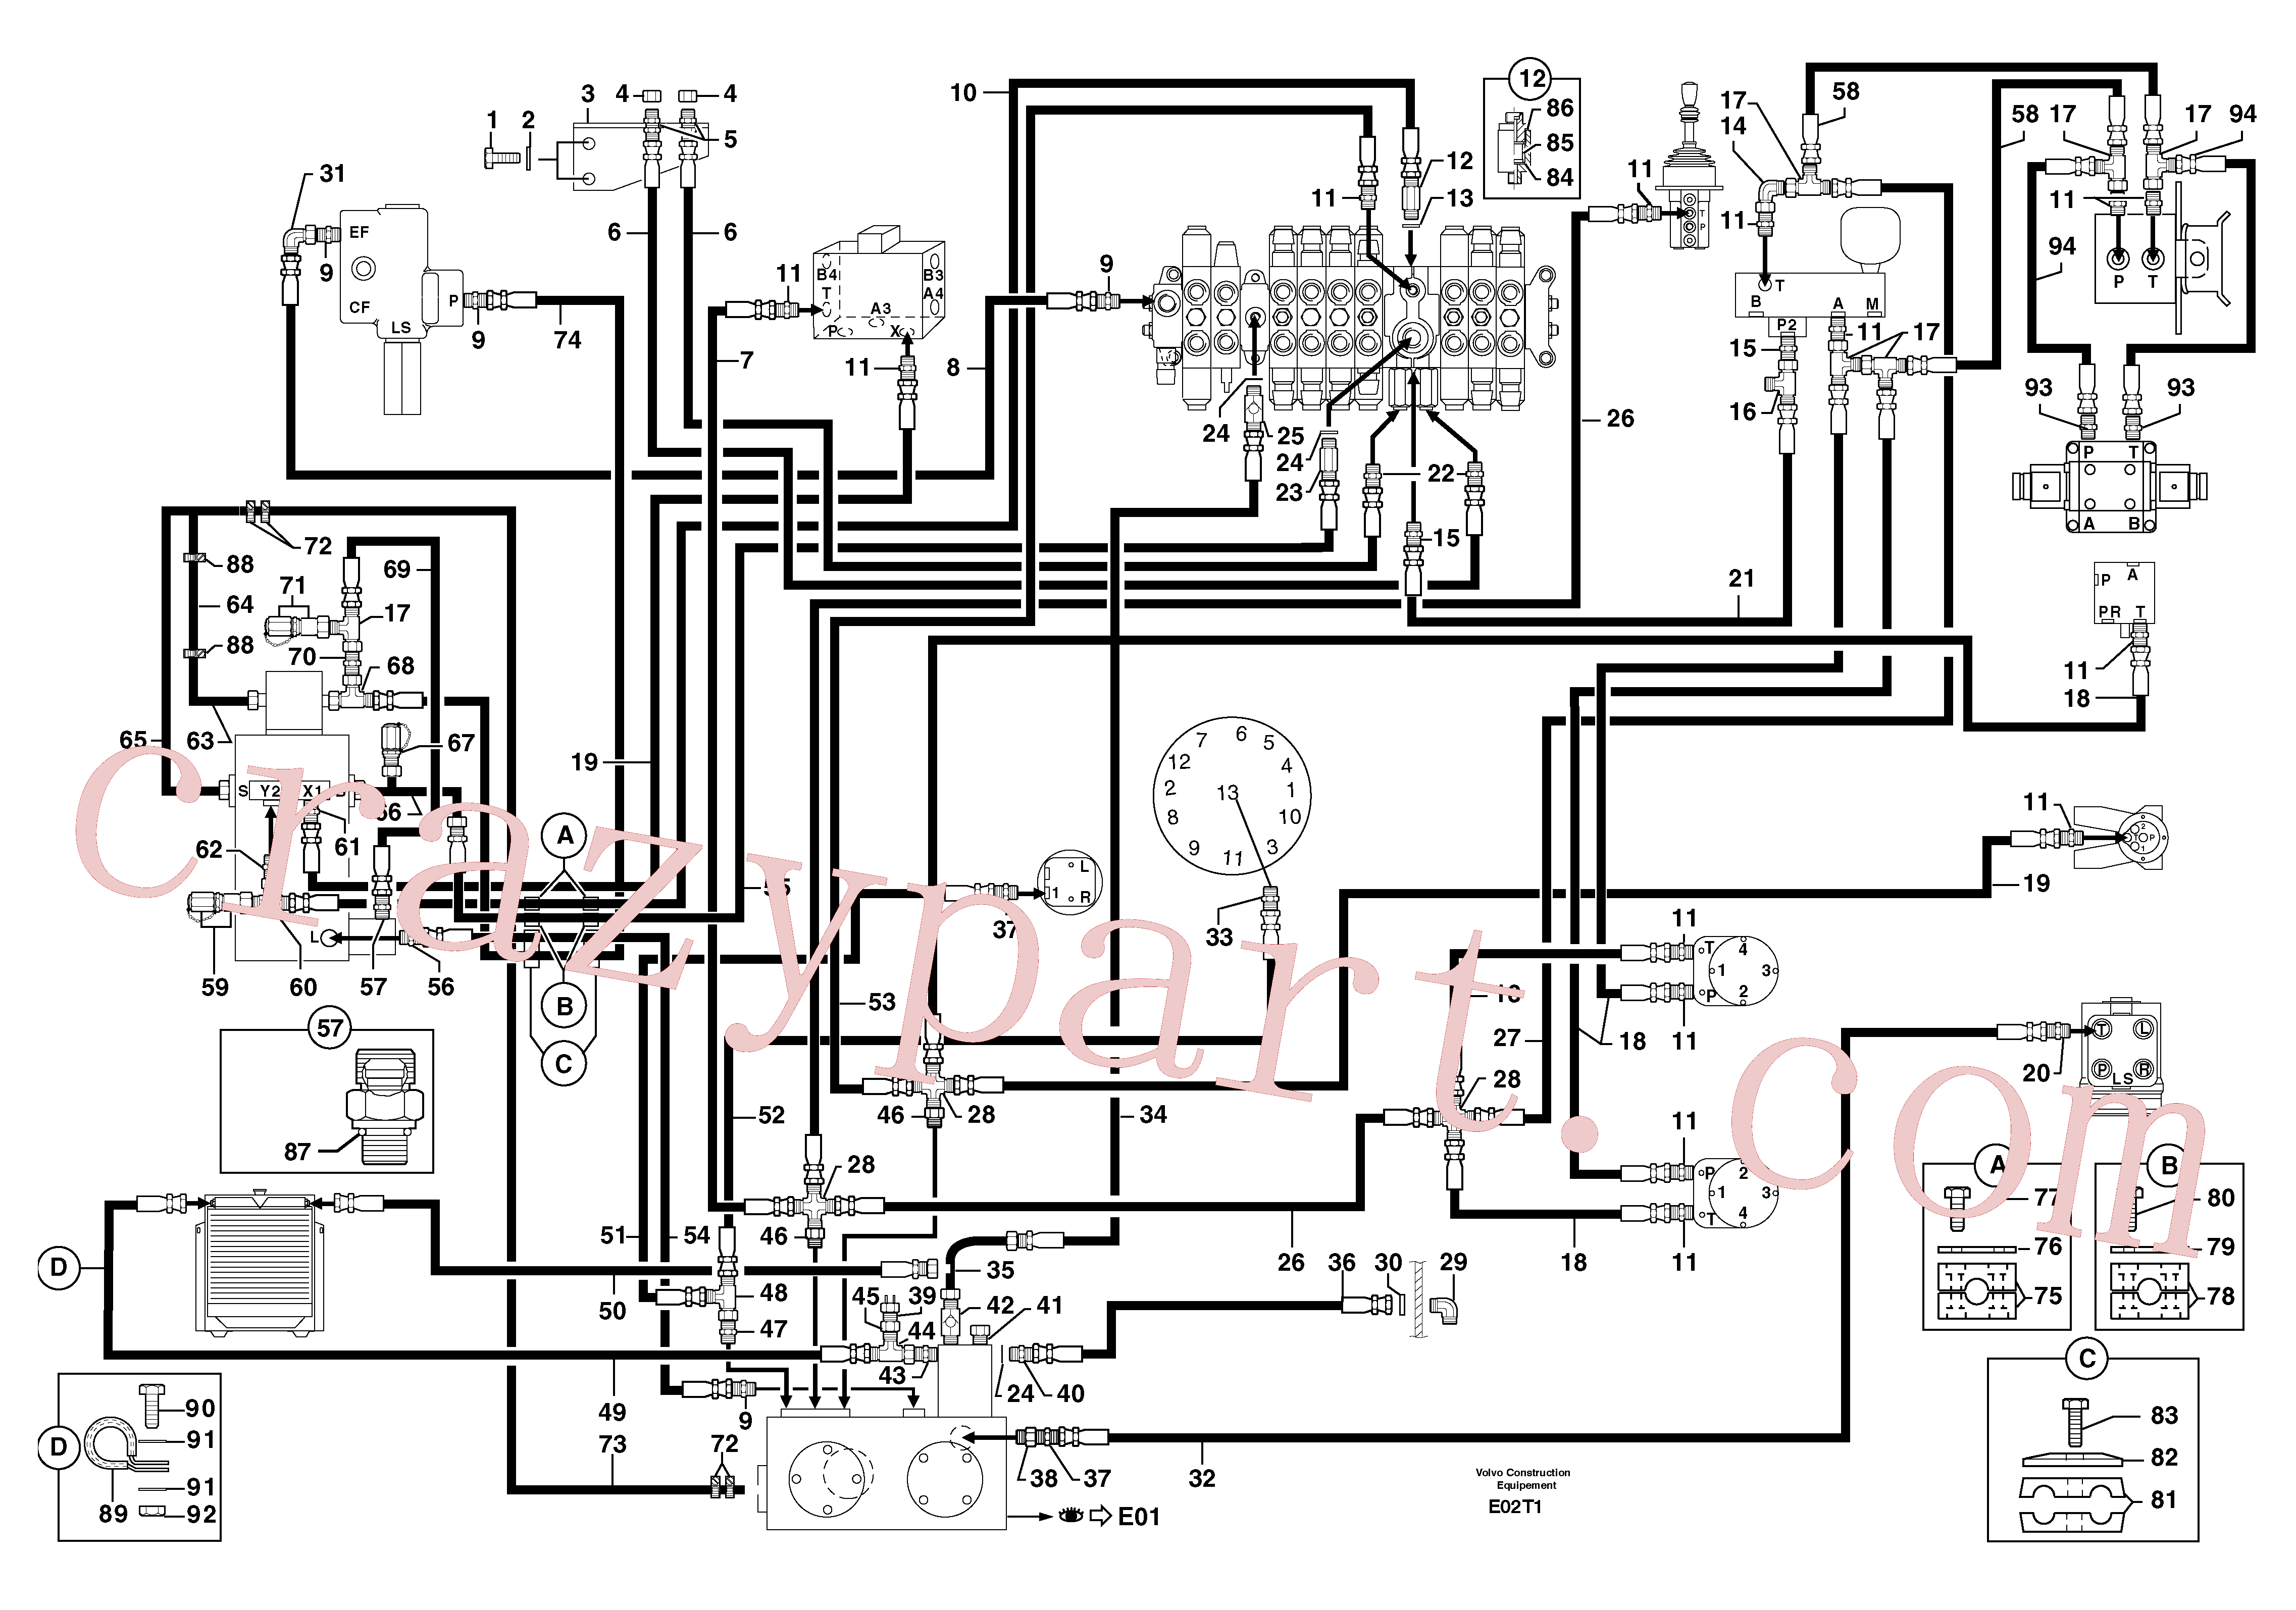 PJ5330086 for Volvo Attachments supply and return circuit(E02T1 assembly)